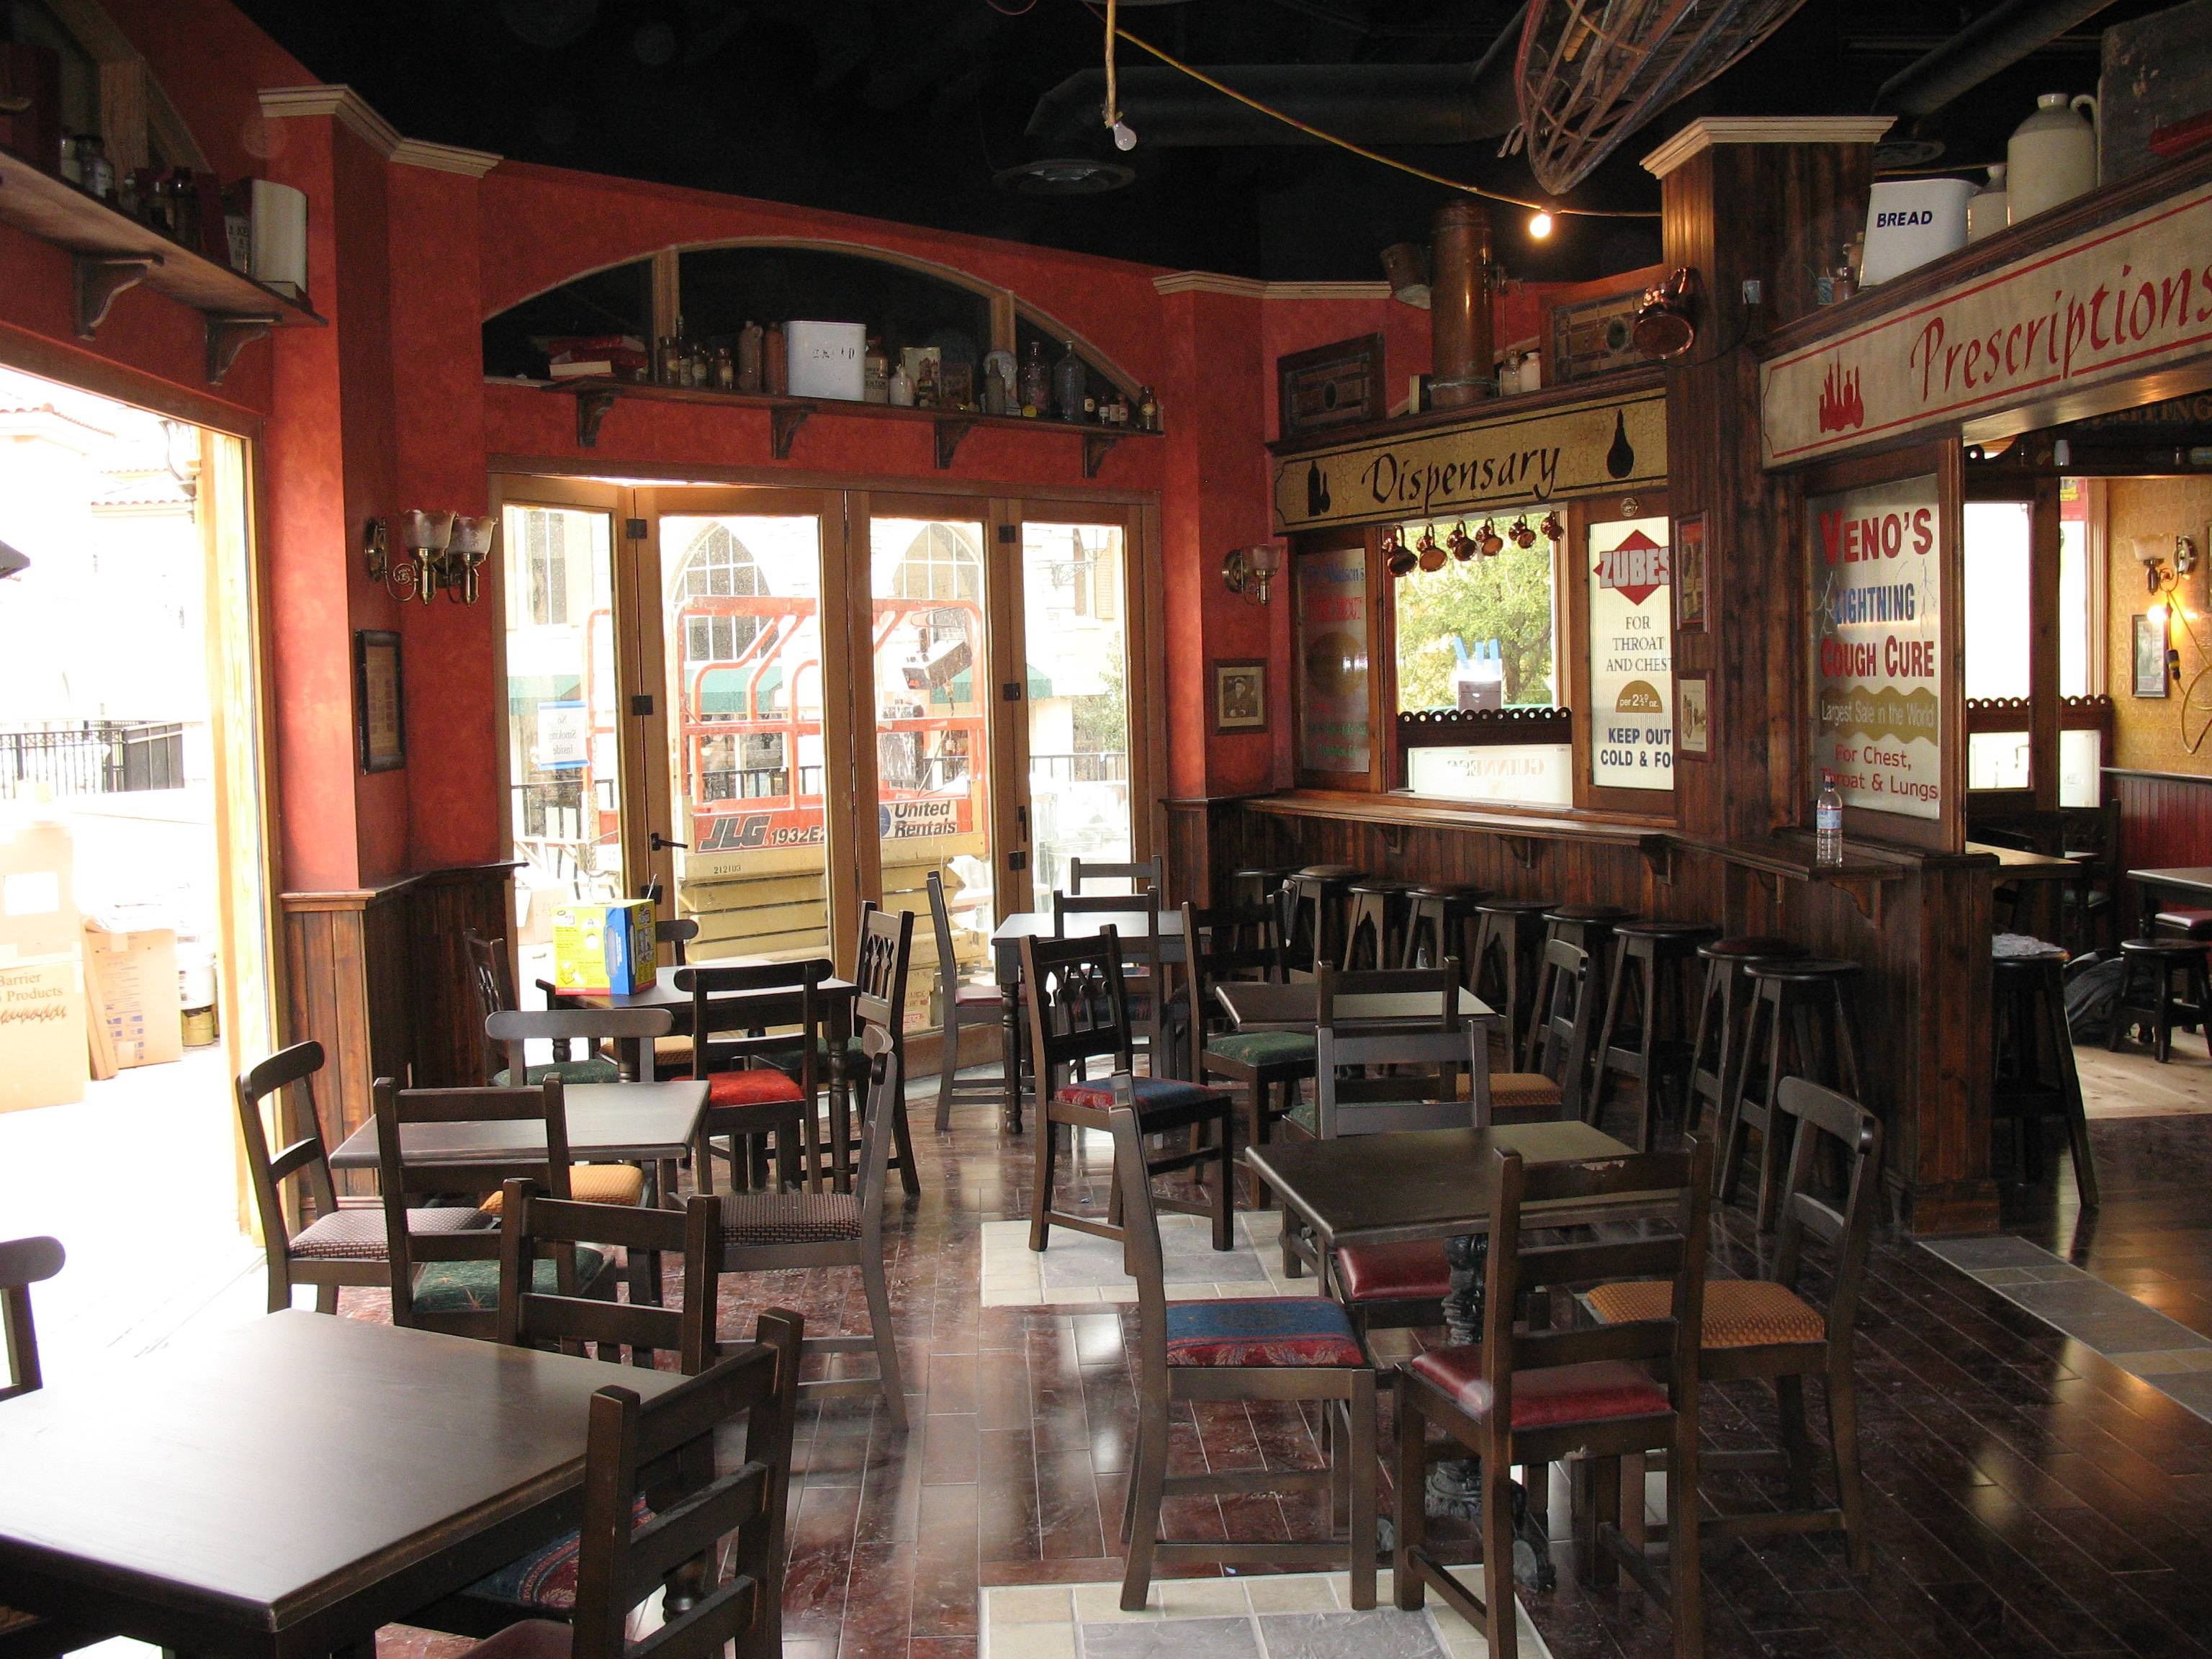 Las vegas interior design ol irish pubs irish pub company for Las vegas interior designers